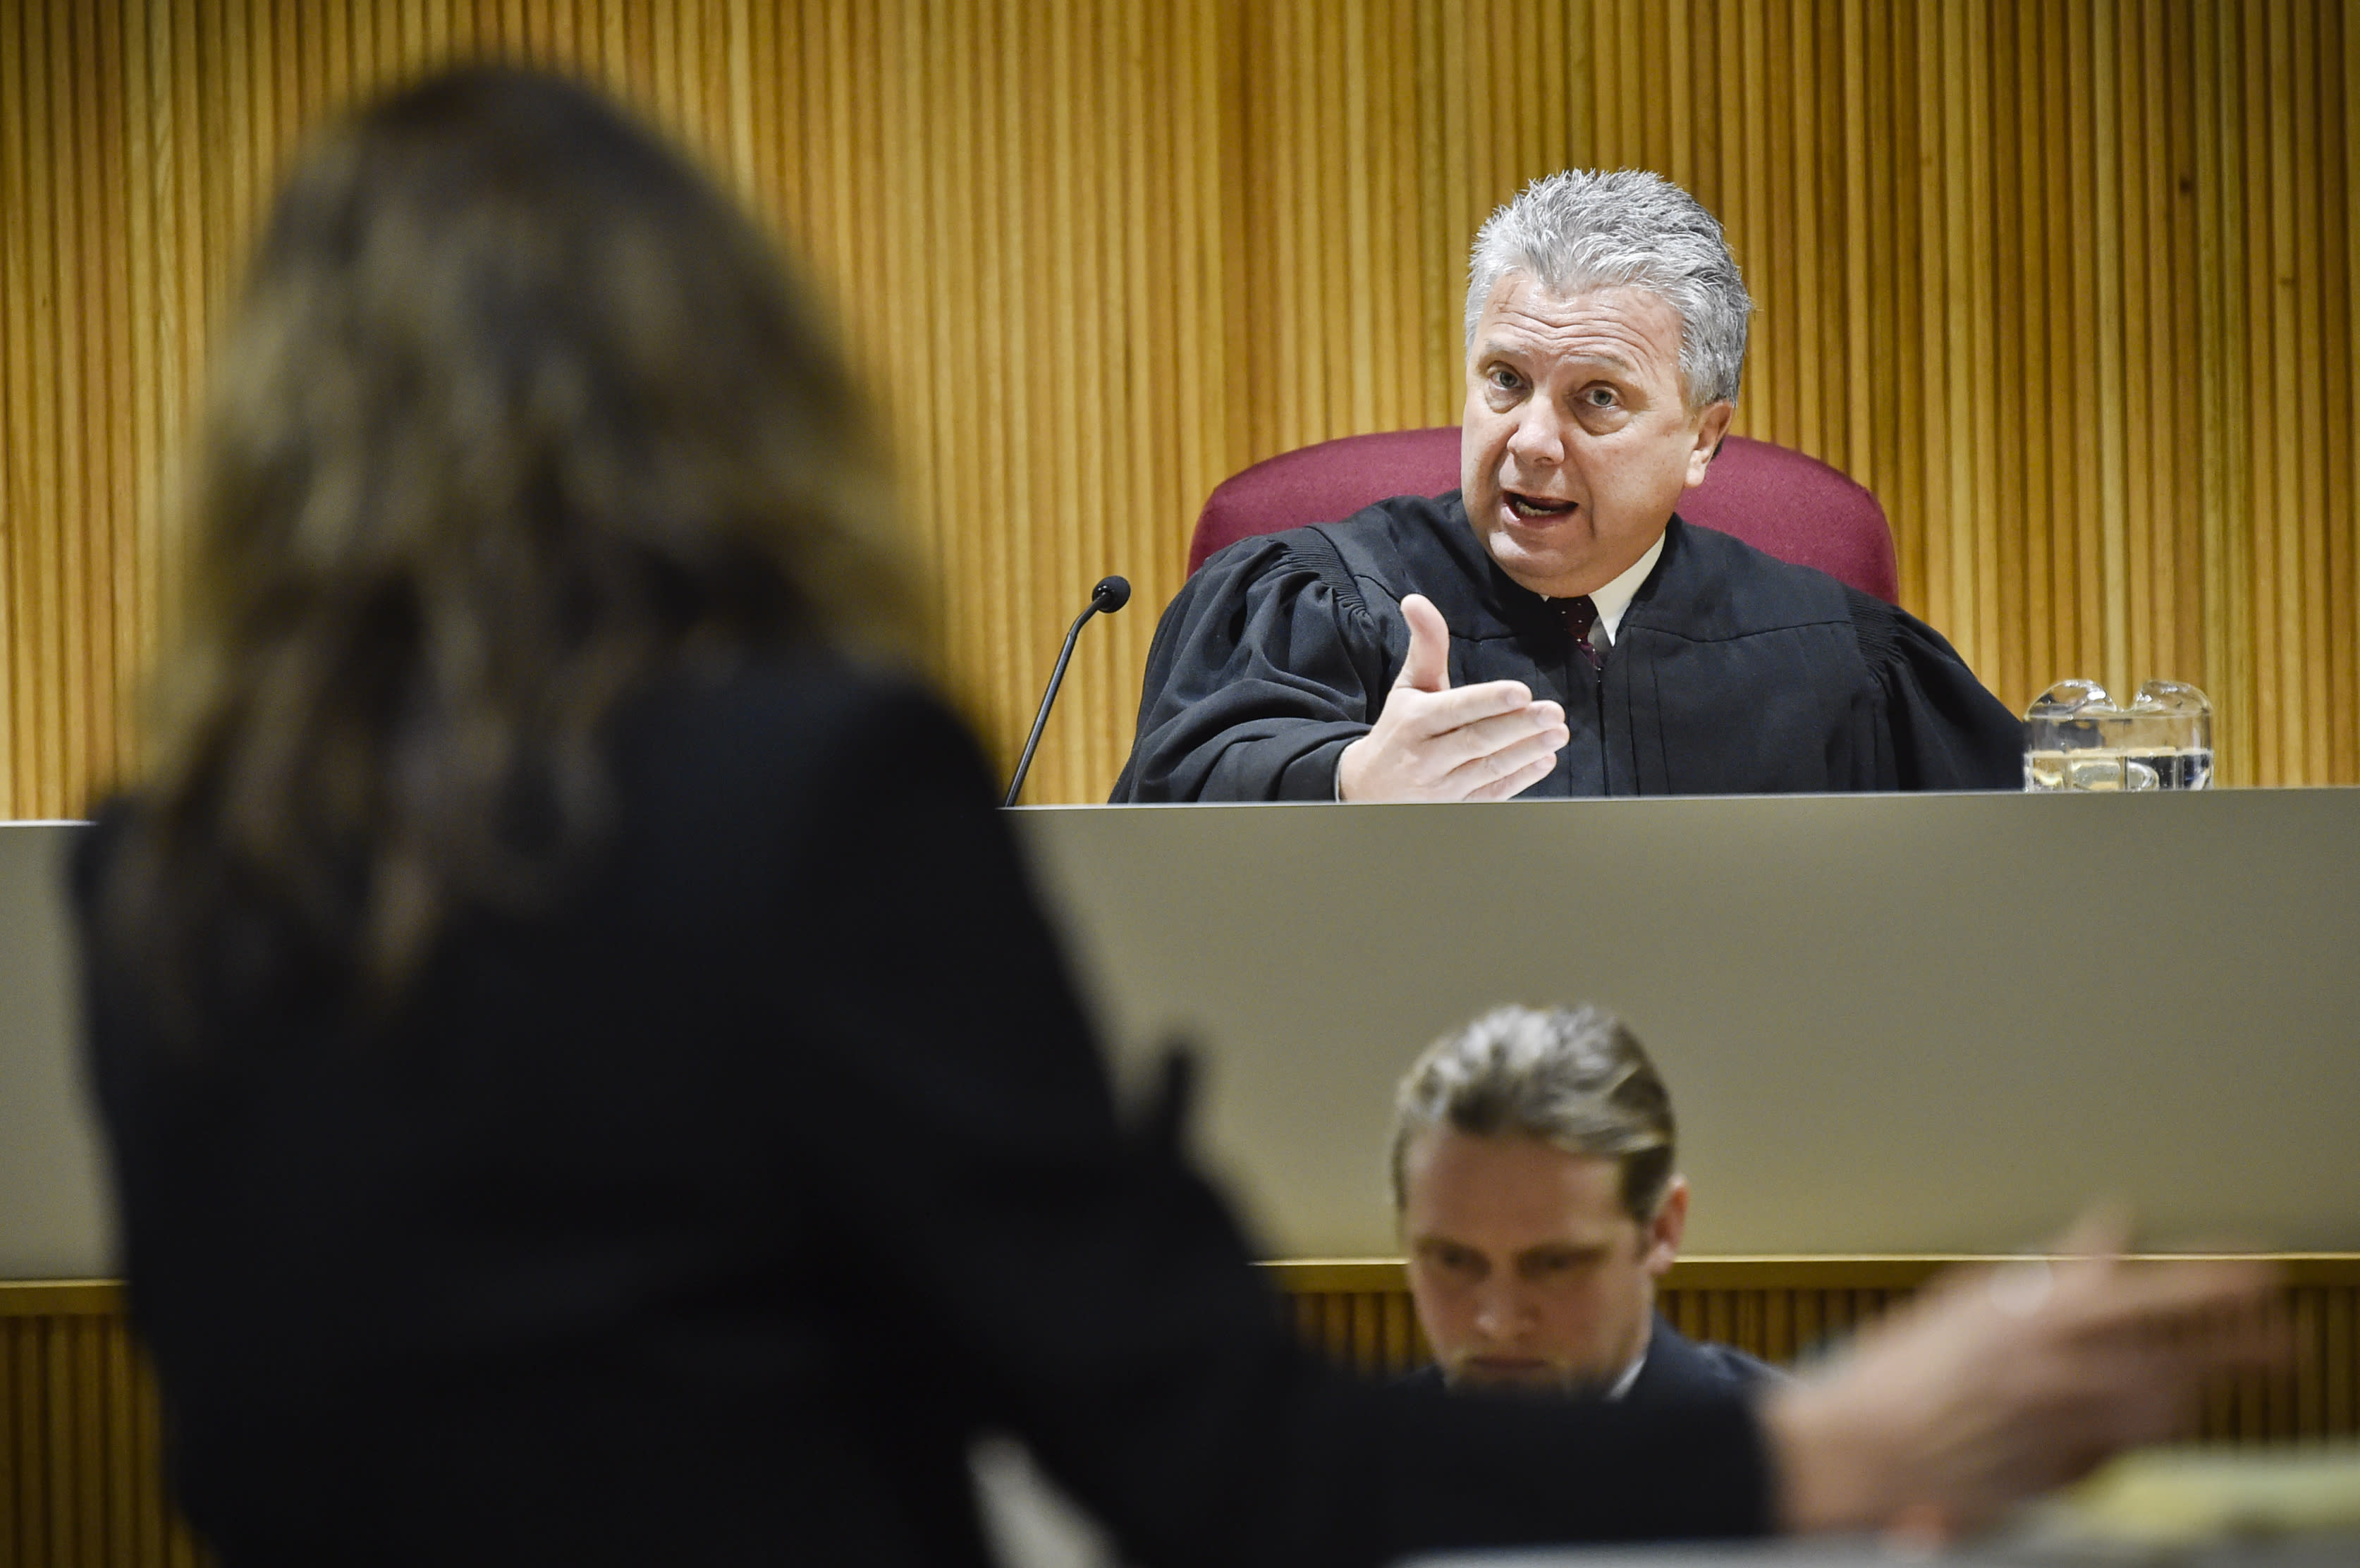 Montana Supreme Court Justice Dirk Sandefur, right, questions Maureen Lennon, attorney for the Montana Association of Counties, arguing on behalf of the Lincoln County Sheriff, on Wednesday, Jan. 8, 2020, in Helena, Mont., during arguments on whether local law enforcement officers have the authority to arrest people for alleged civil violations of federal immigration law. The ACLU, on behalf of Agustin Ramon, filed a lawsuit against Lincoln County in October 2018, after Ramon, a dual resident of Mexico and France, was arrested for stealing prescription medication from a neighbor's house in Eureka Court. (Thom Bridge/Independent Record via AP)